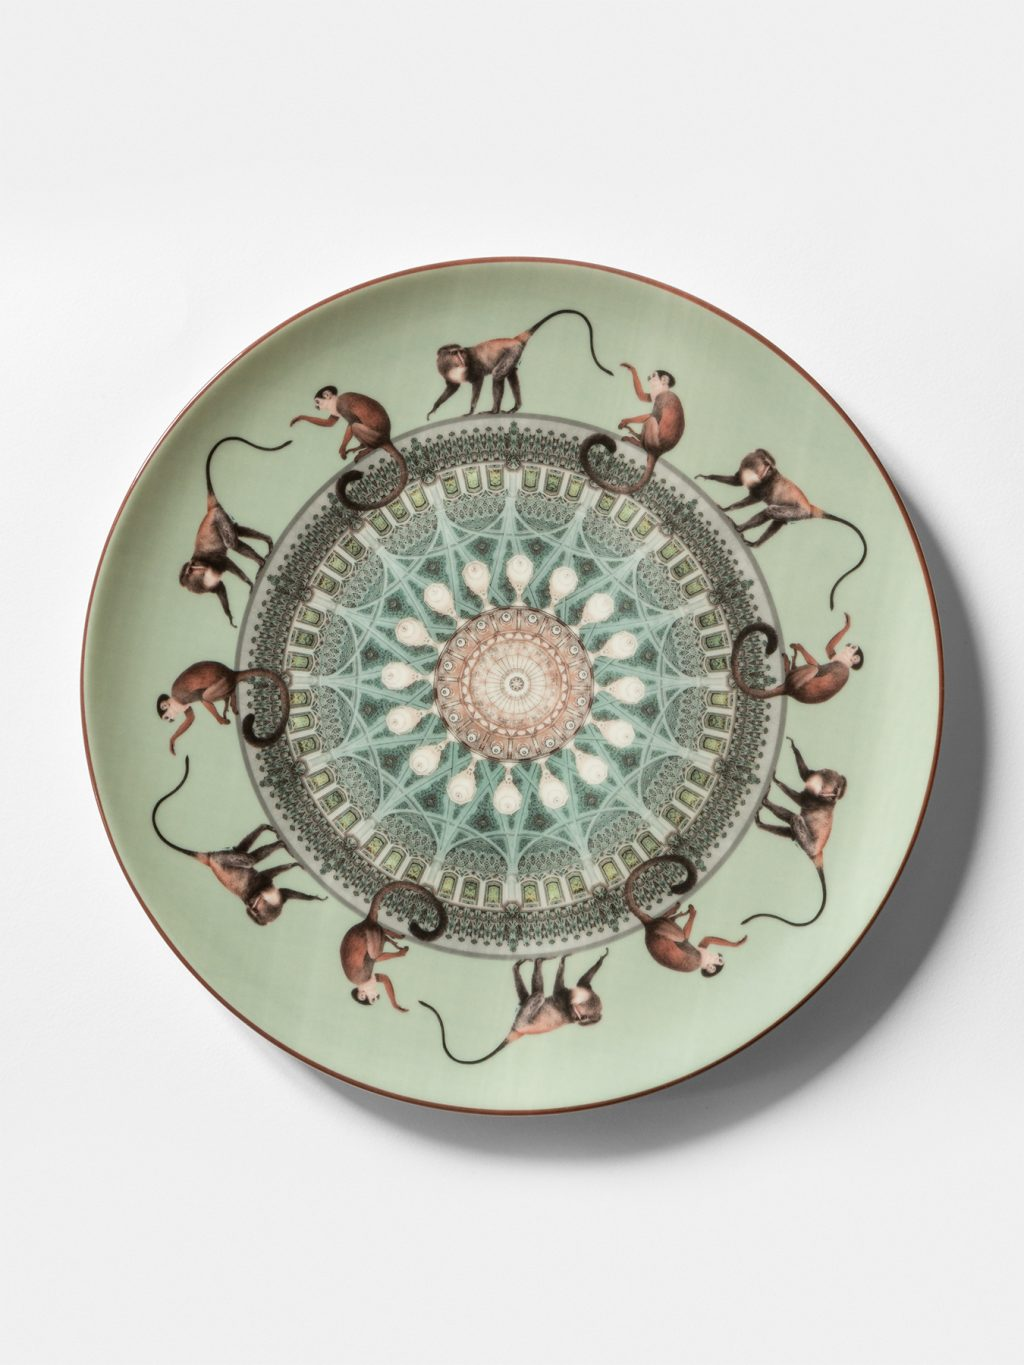 Constantinople, collection of dishes by Vito Nesta, monkeys